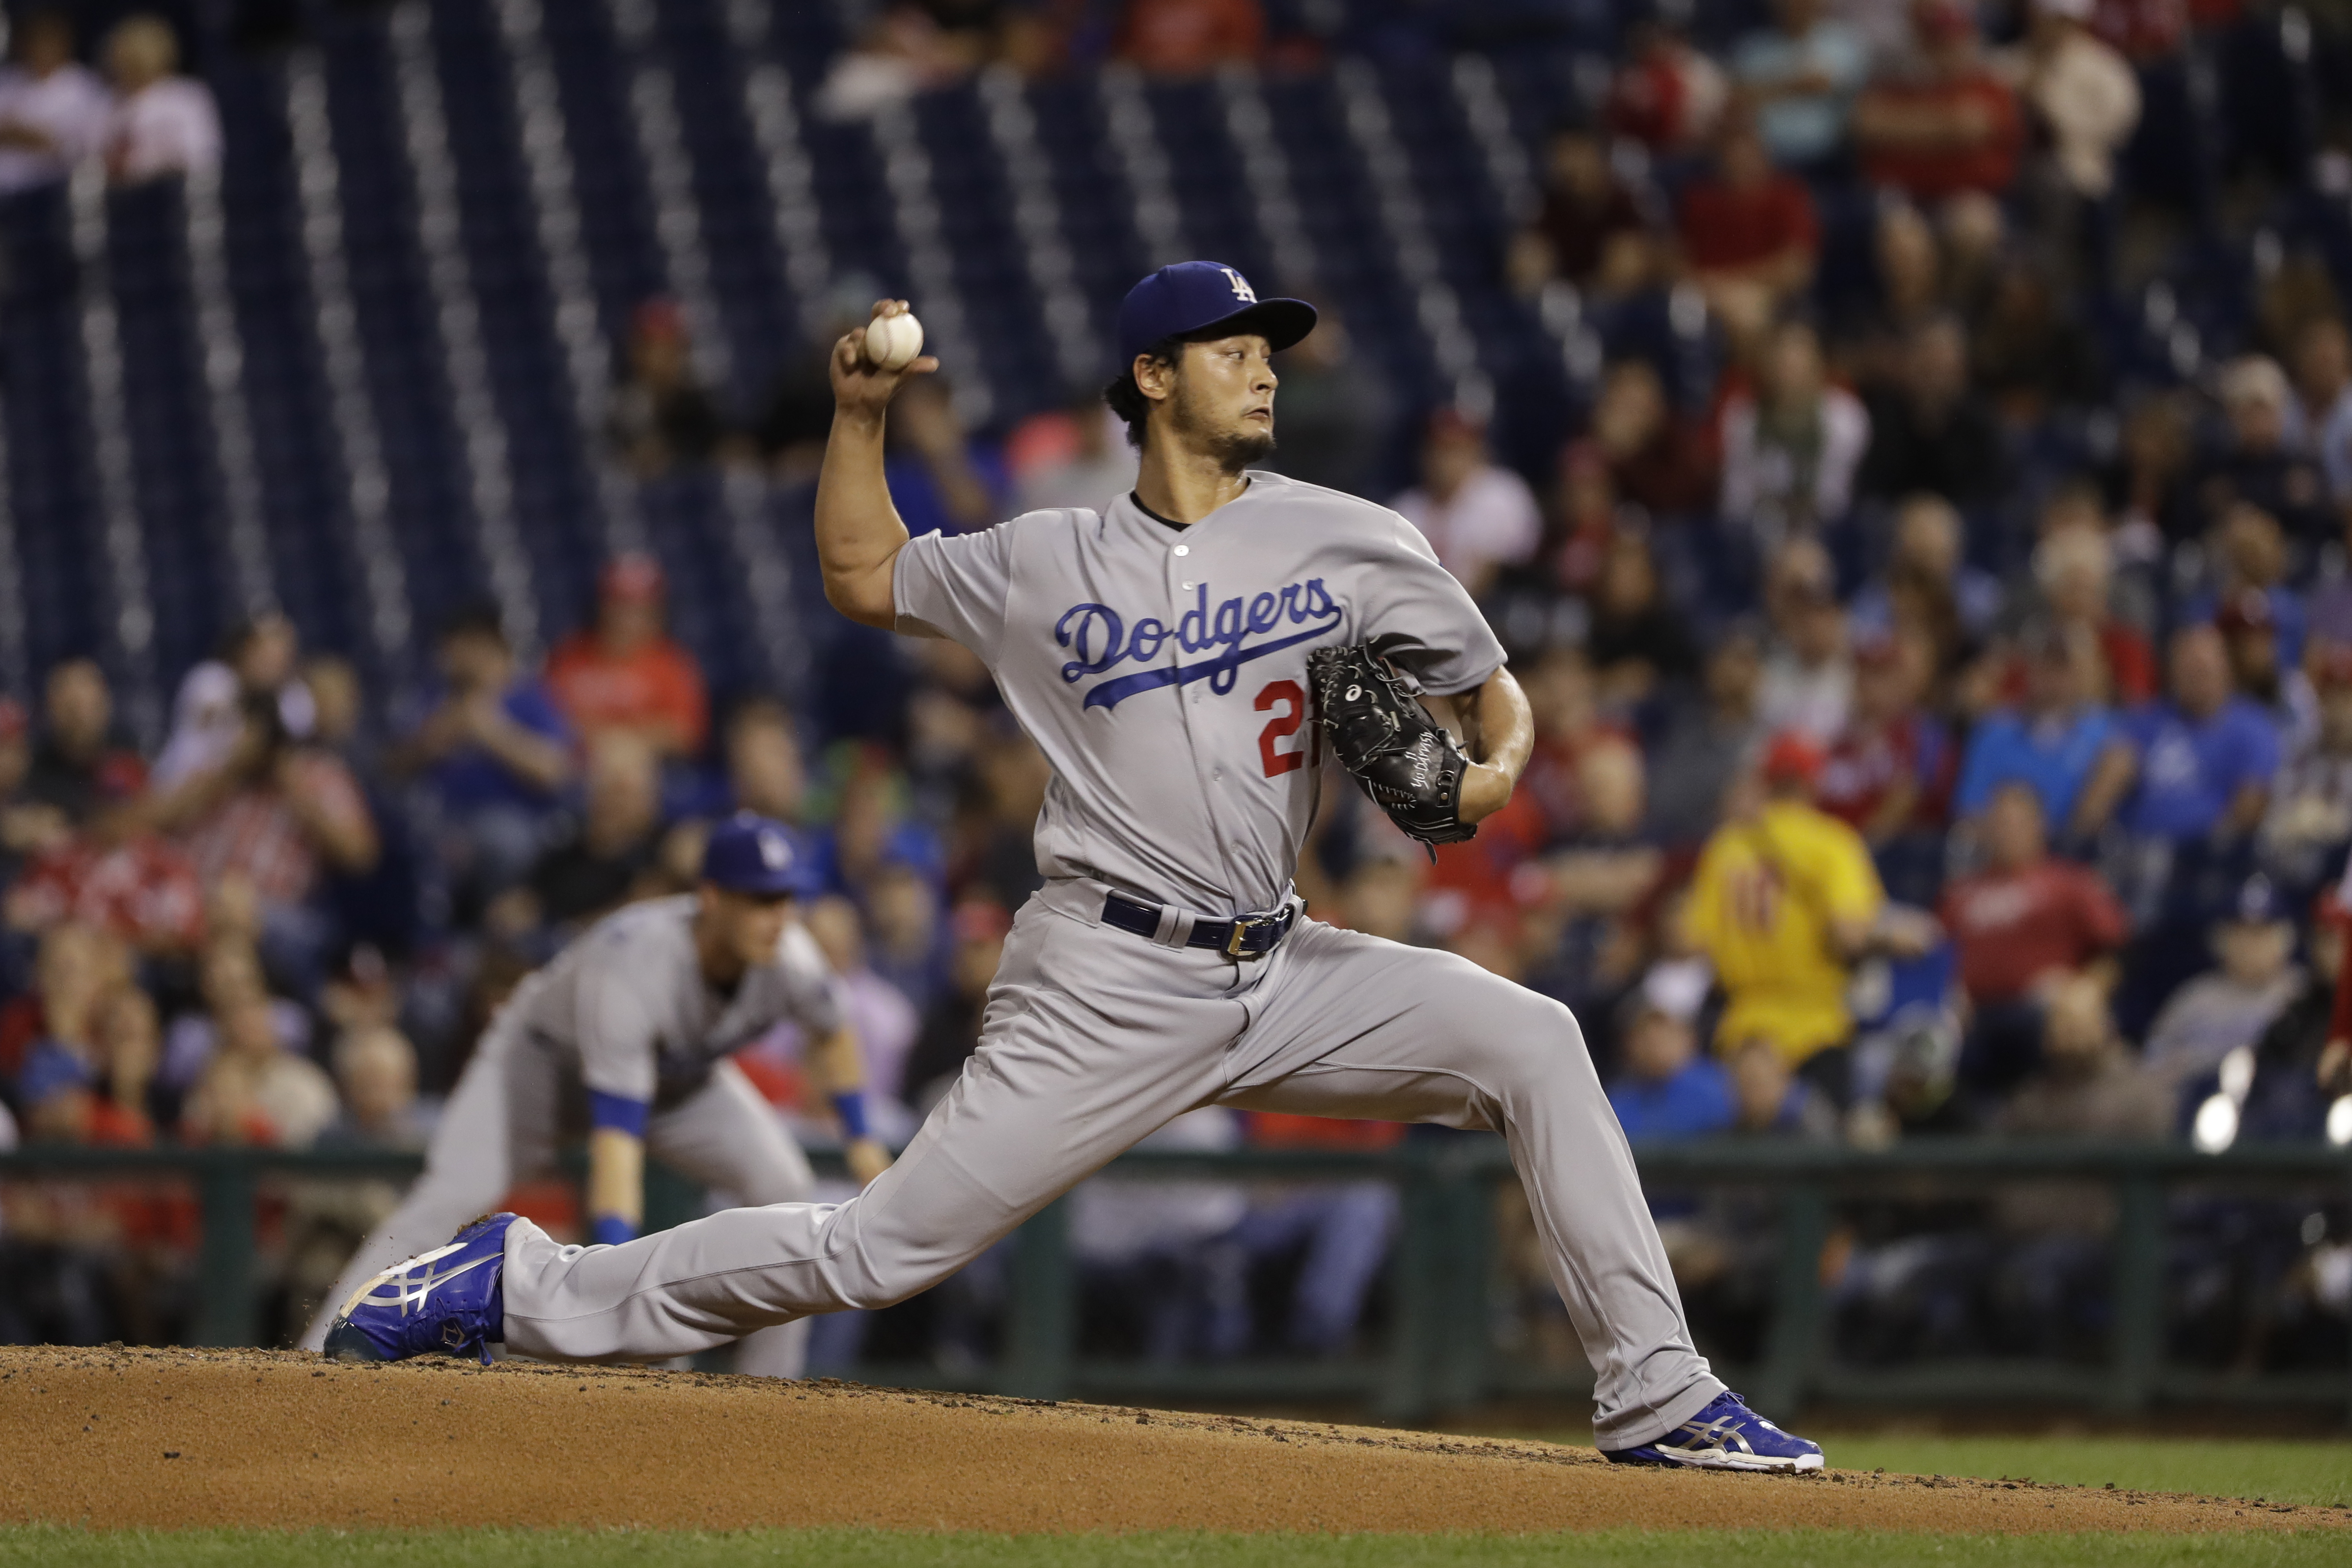 Los Angeles Dodgers pitcher Yu Darvish is one of three free-agent pitchers the Phillies should target this offseason. The others are St. Louis´ Lance Lynn and Jake Arrieta of the Chicago Cubs. (AP Photo/Matt Slocum)